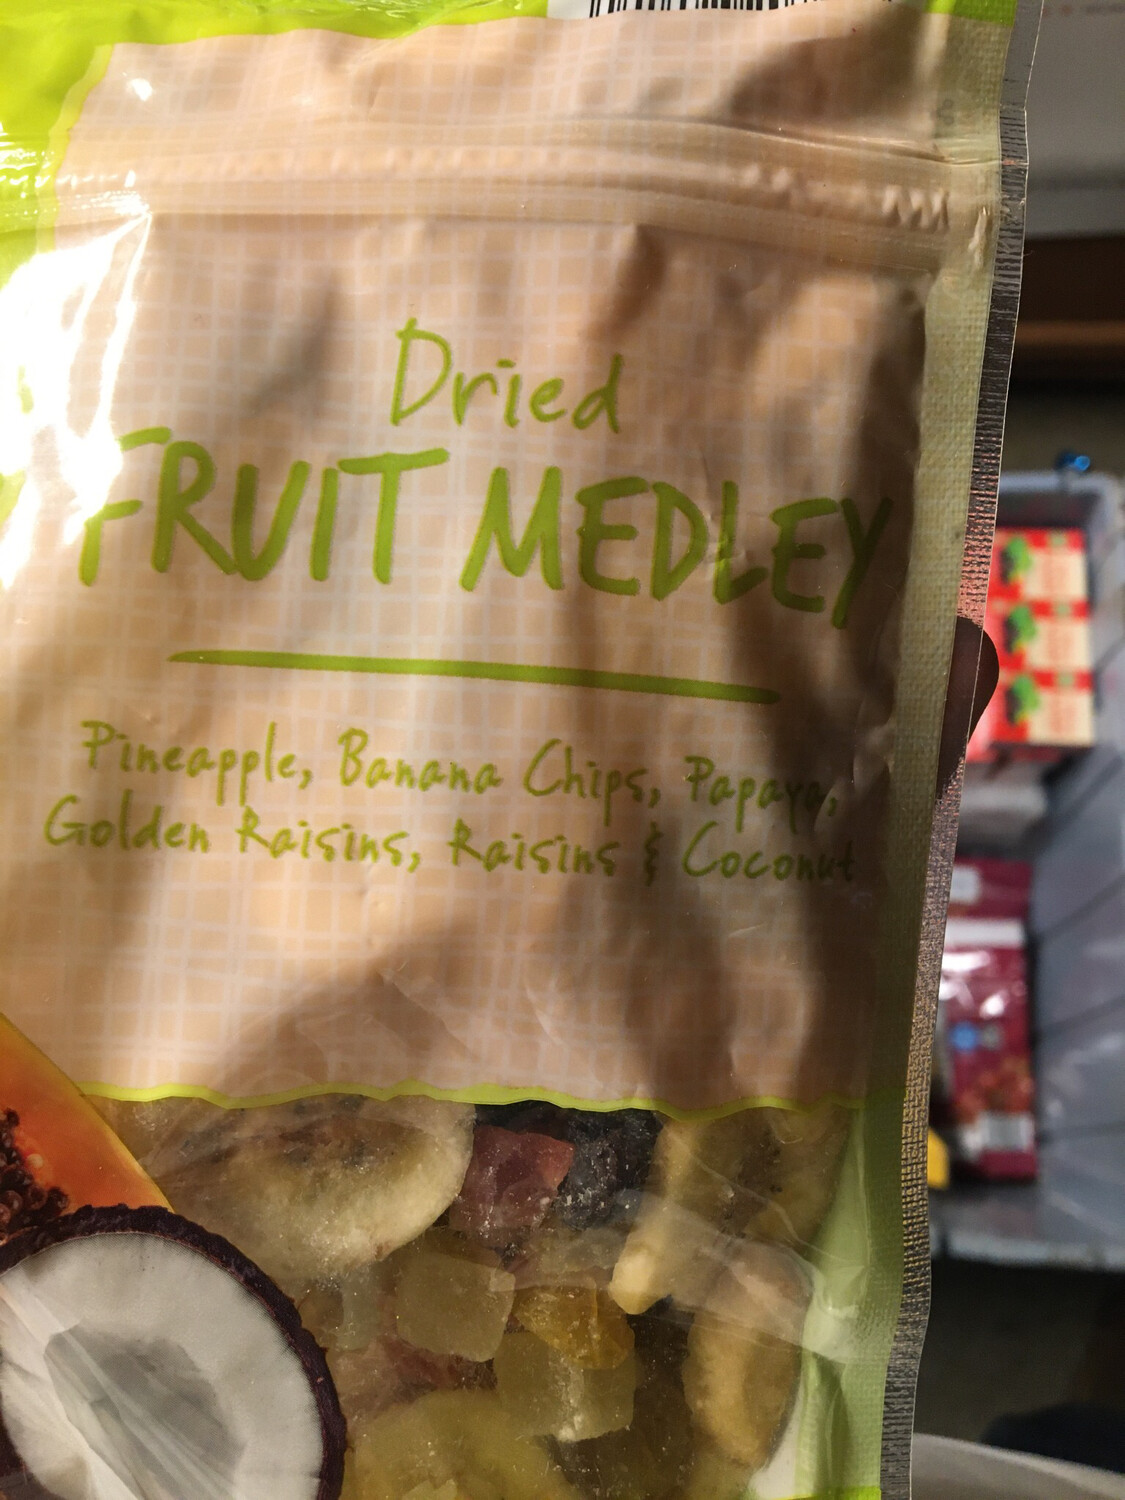 Dried Fruit Medley